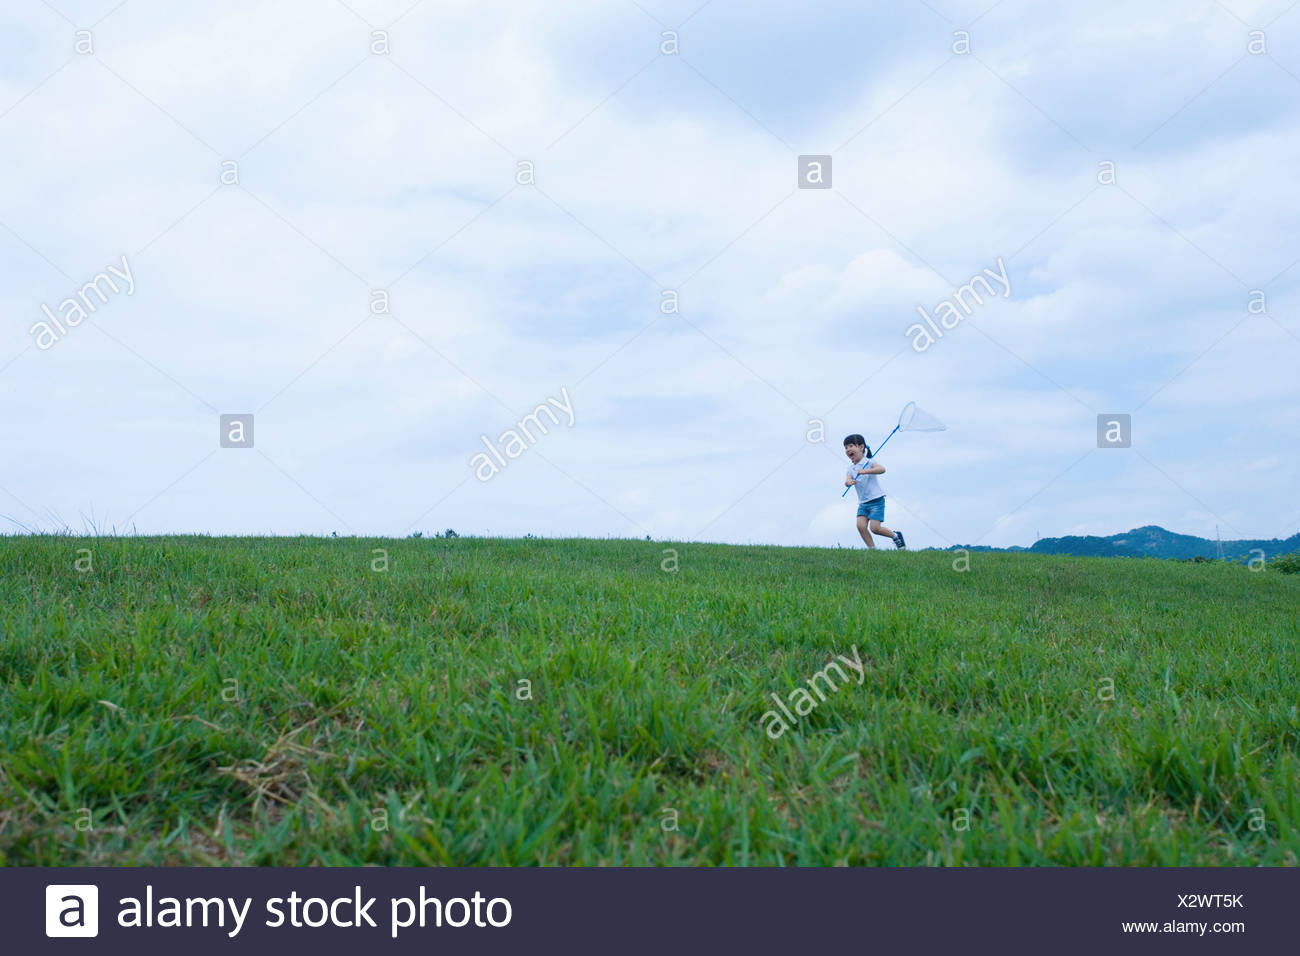 girl running through the field holding dragonfly net - Stock Image